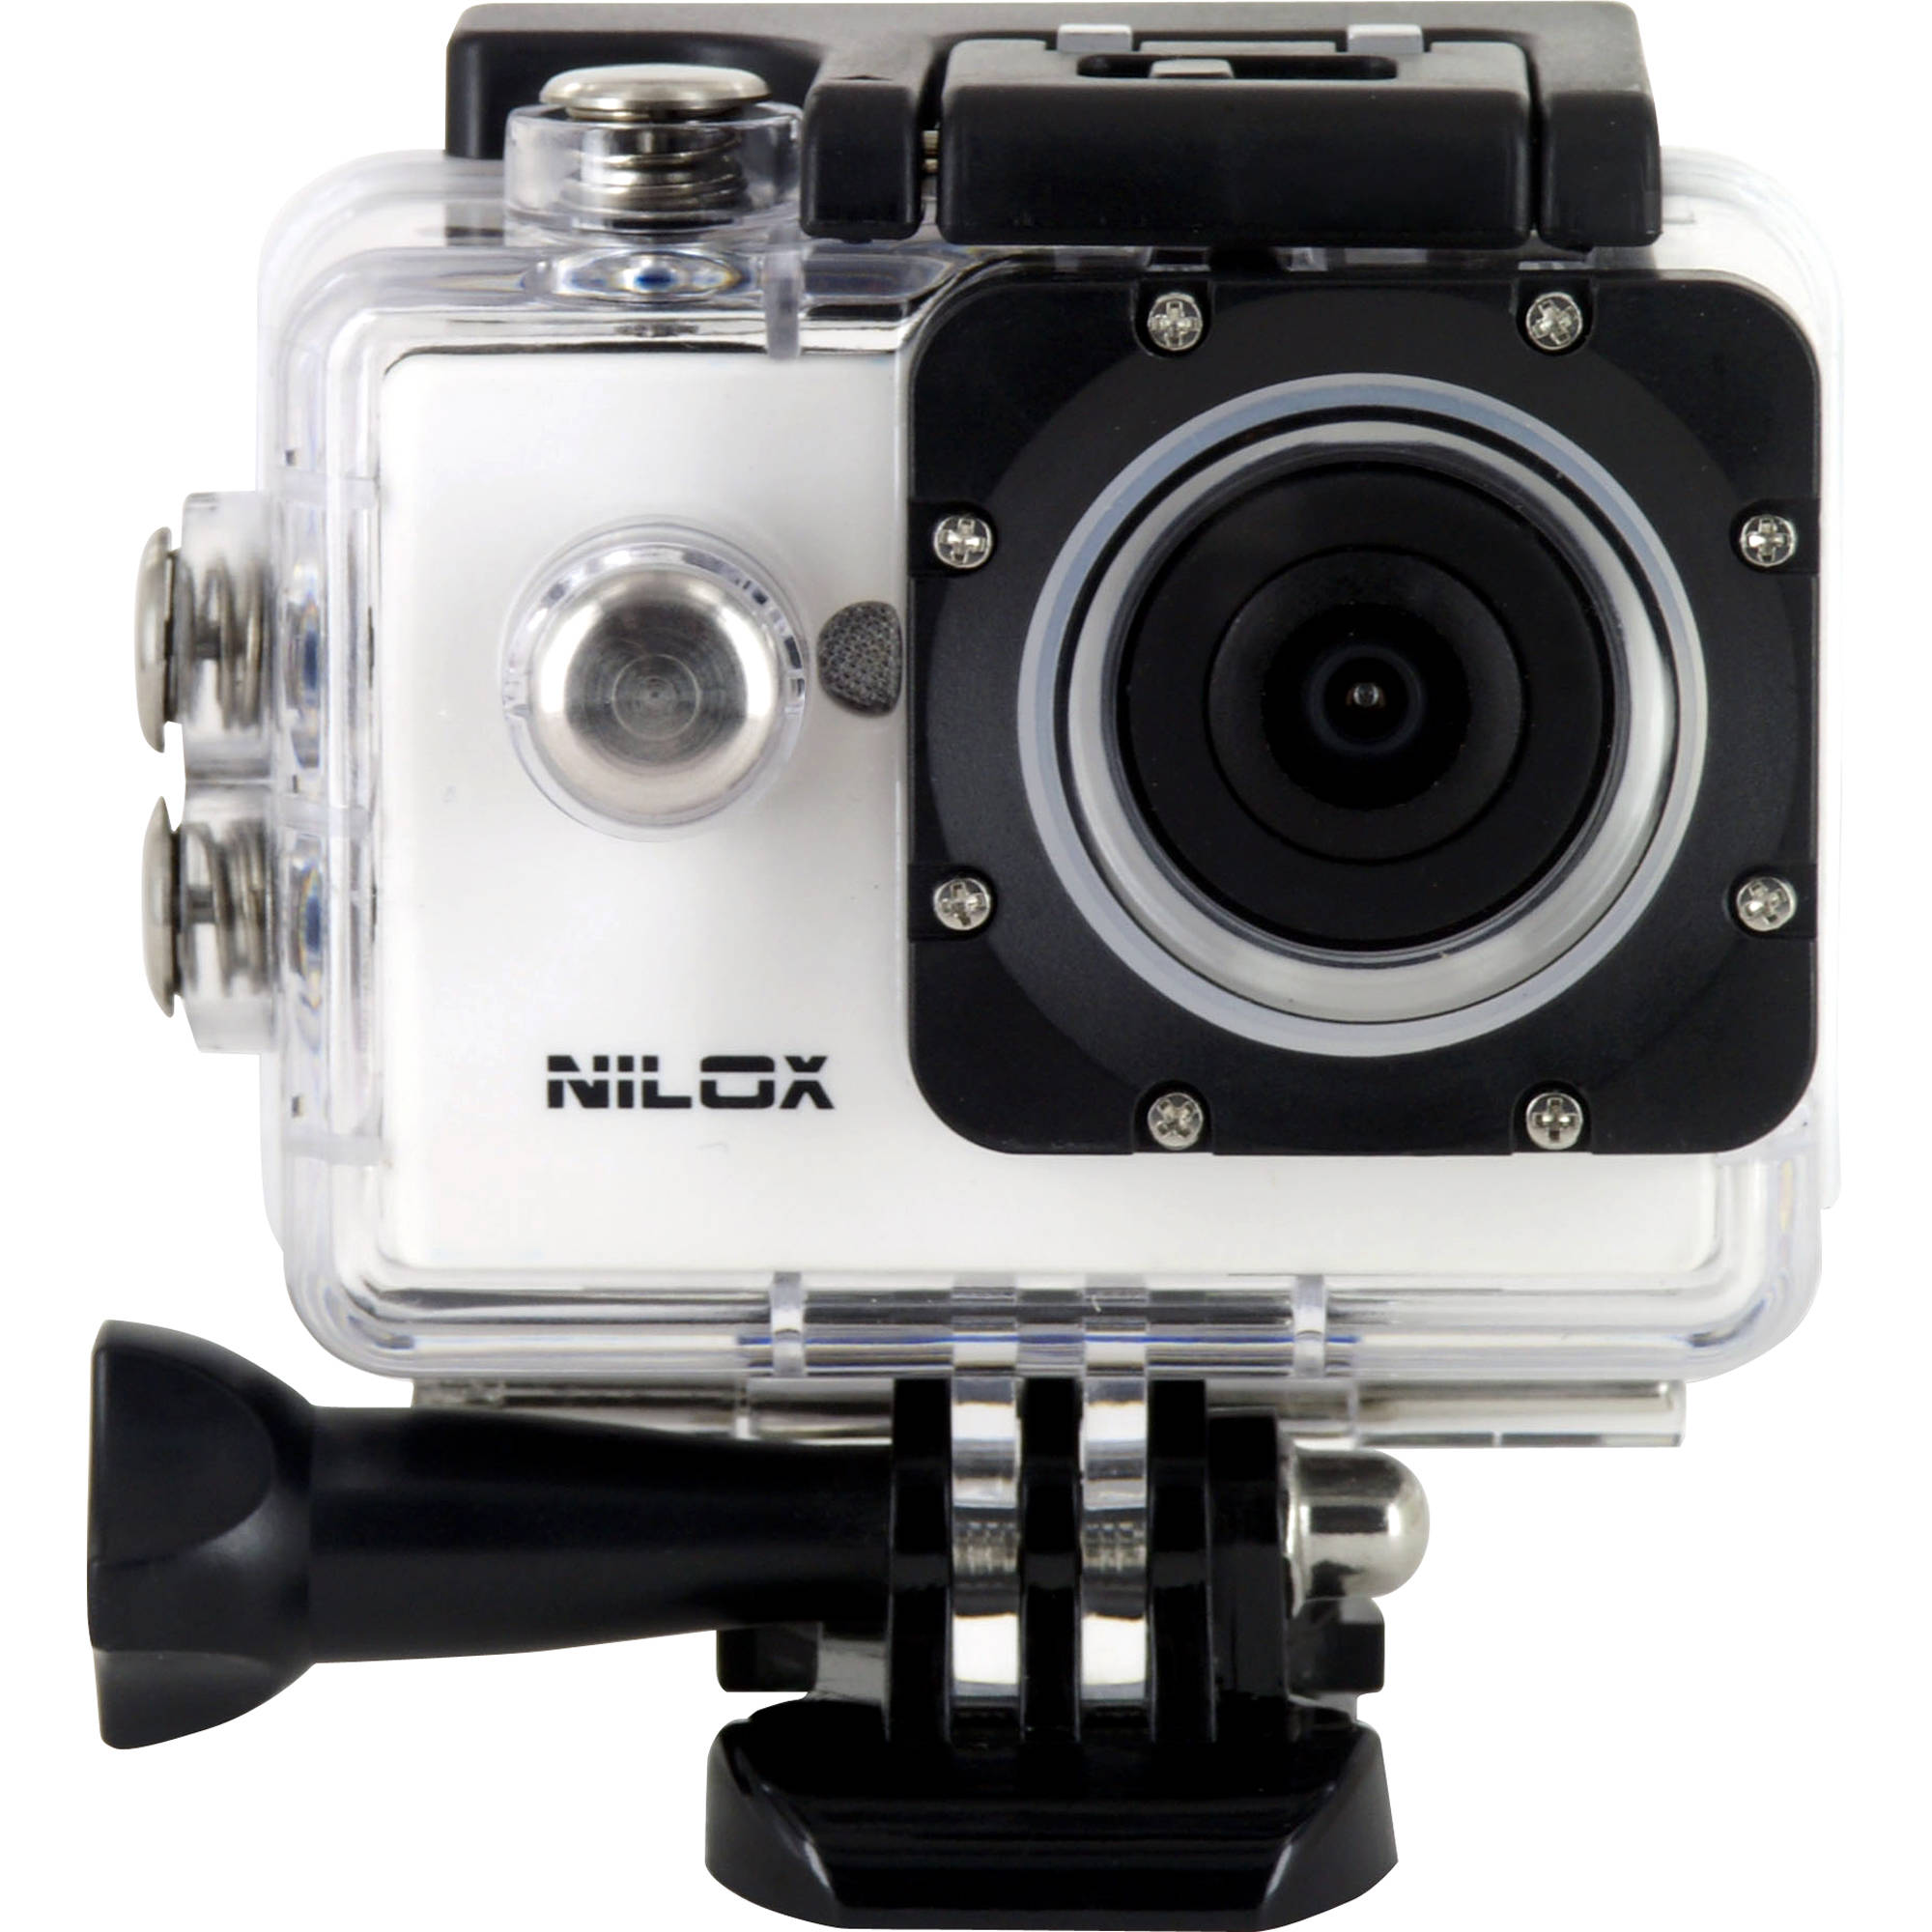 Nilox MINI UP Action Camera NX MINI UP B&H Photo Video